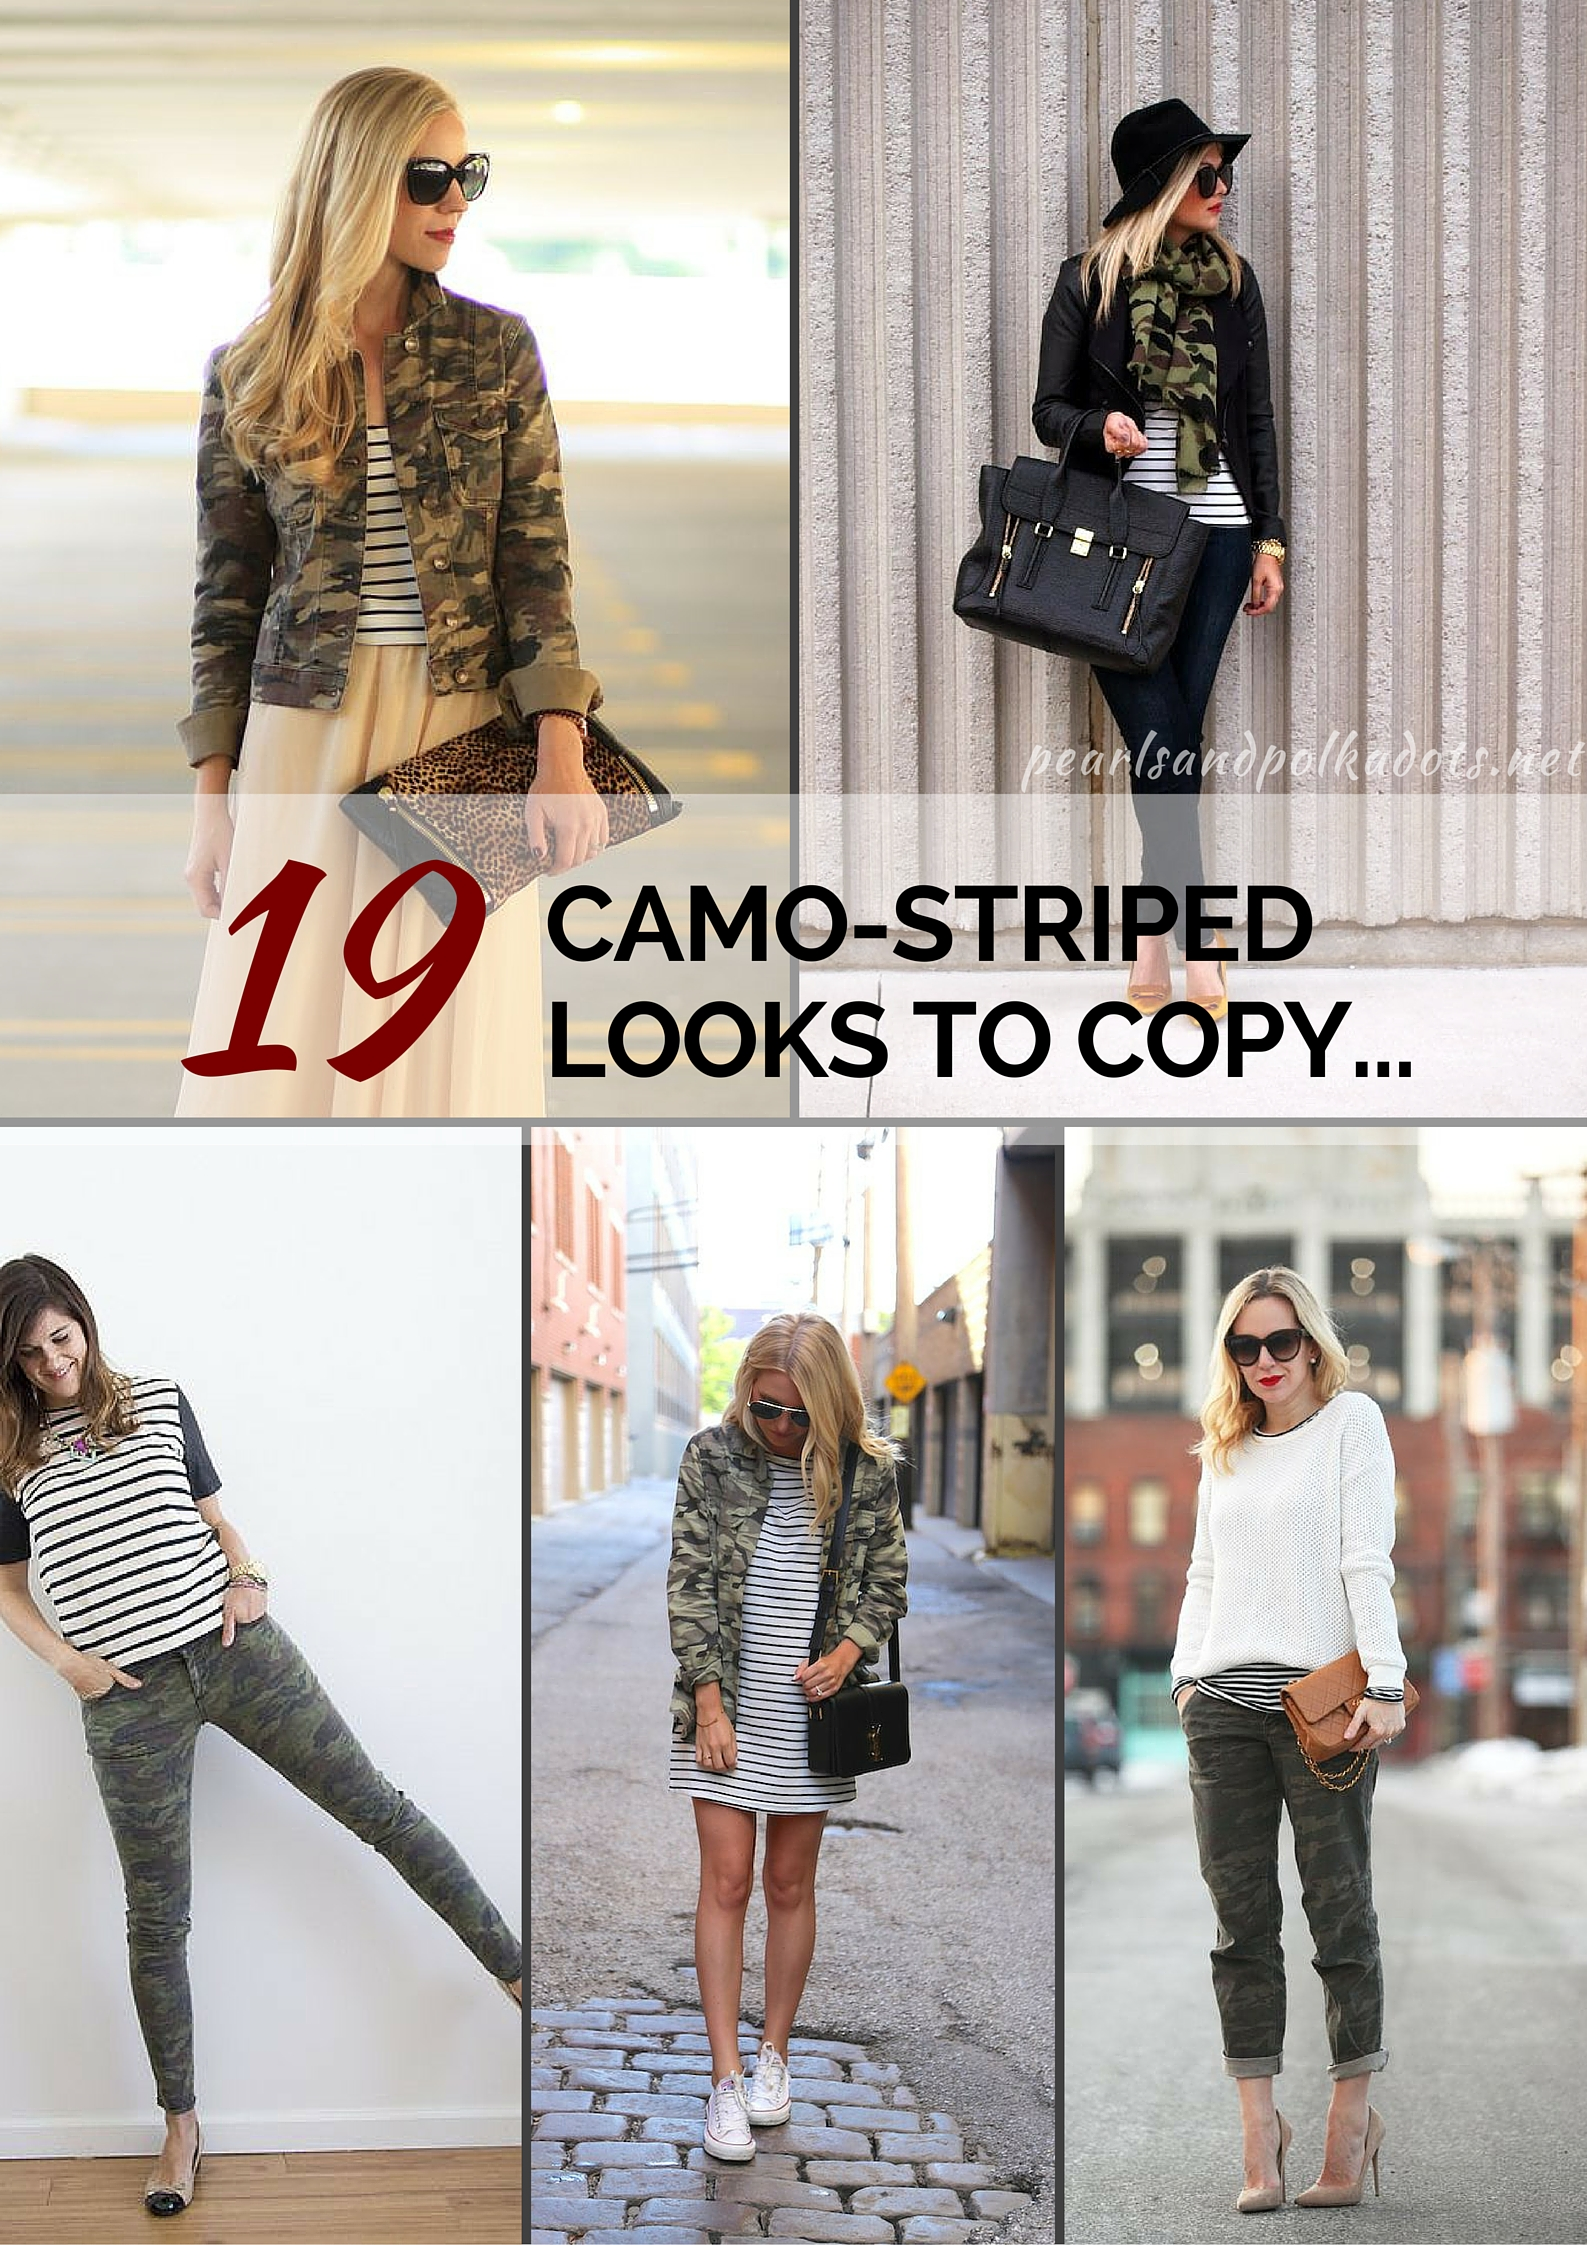 19 Camo-Stripe Looks to Copy…